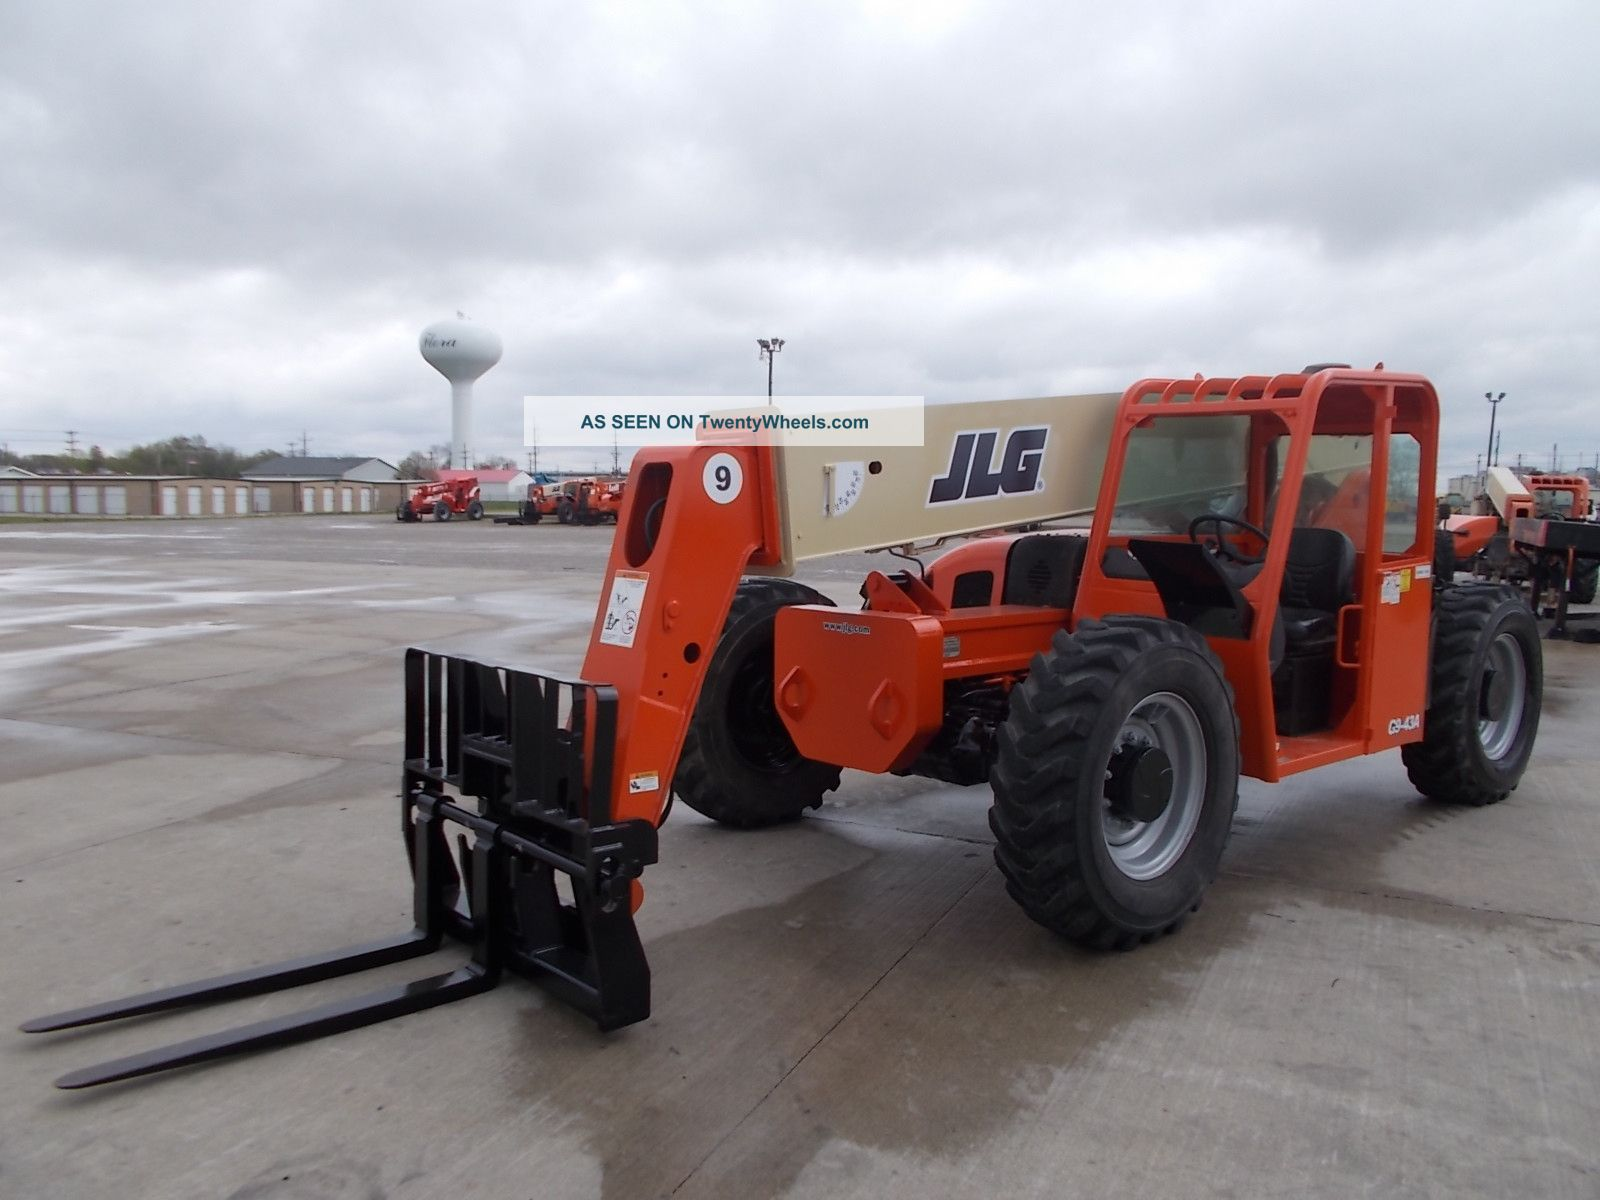 2005 Jlg G9 - 43a Telescopic Telehandler Forklift Lift 9000 Lb Capacity W/rotator Forklifts & Other Lifts photo